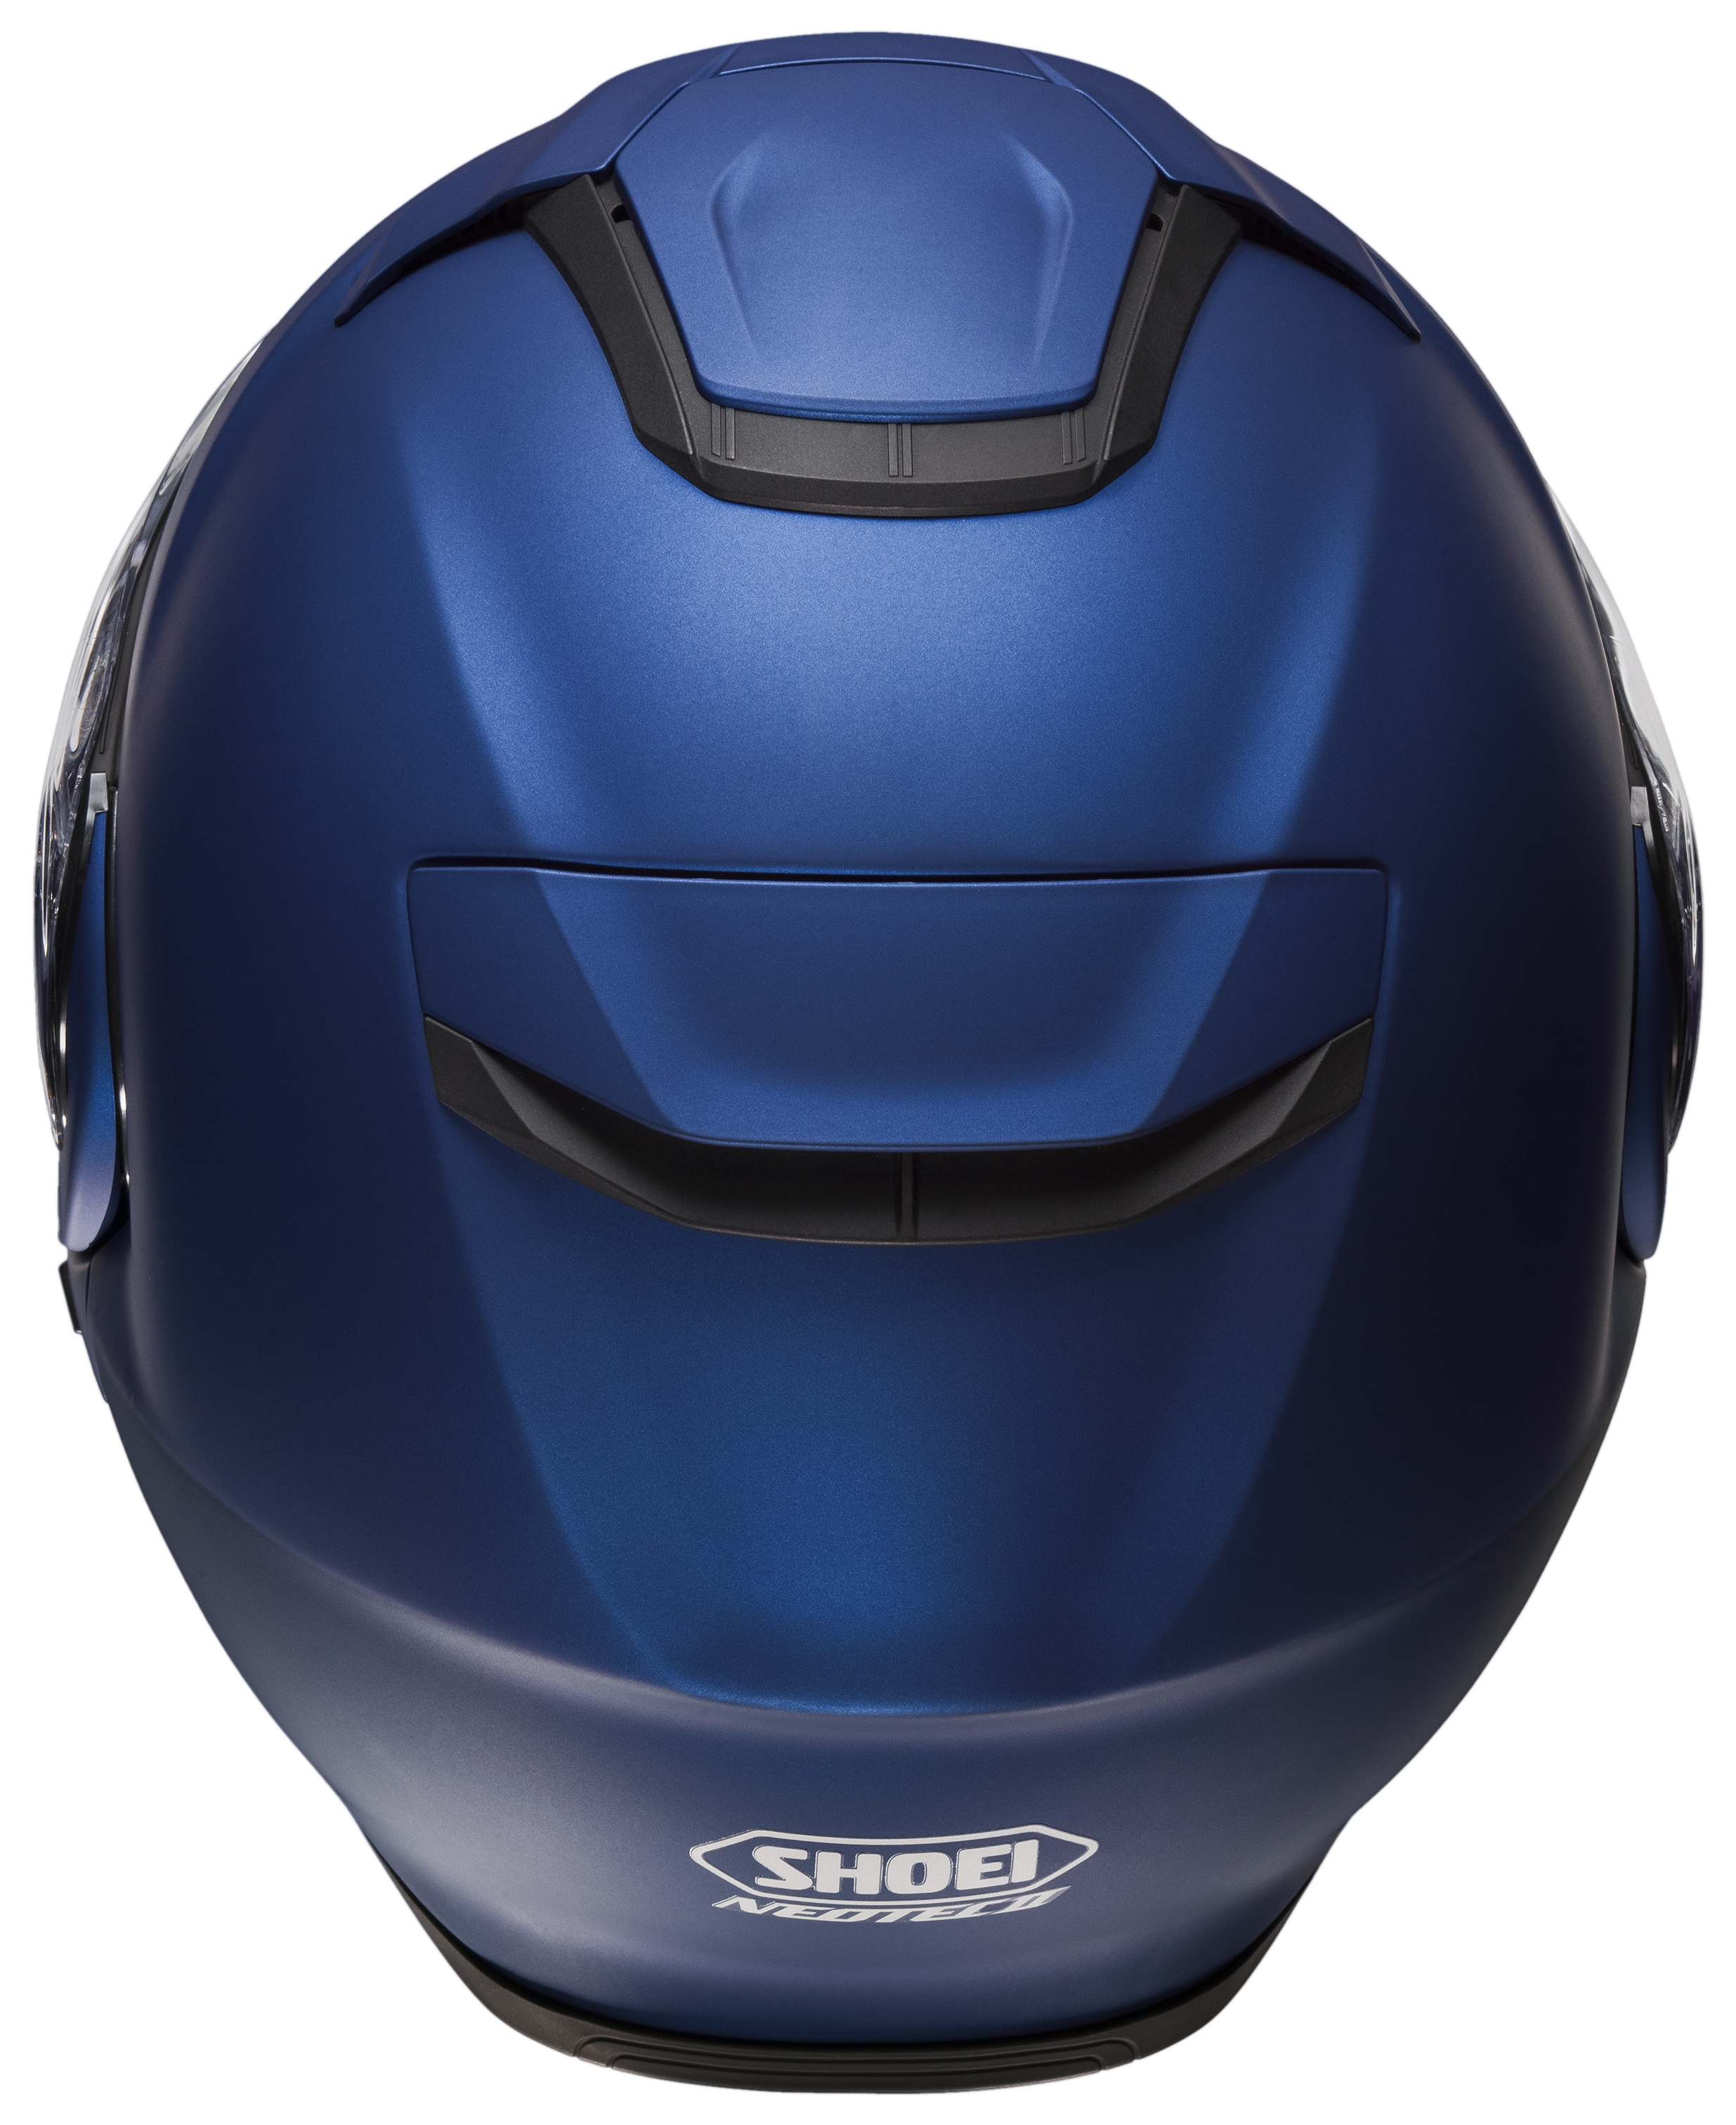 c96b6877 Shoei Neotec 2 Helmet - Cycle Gear